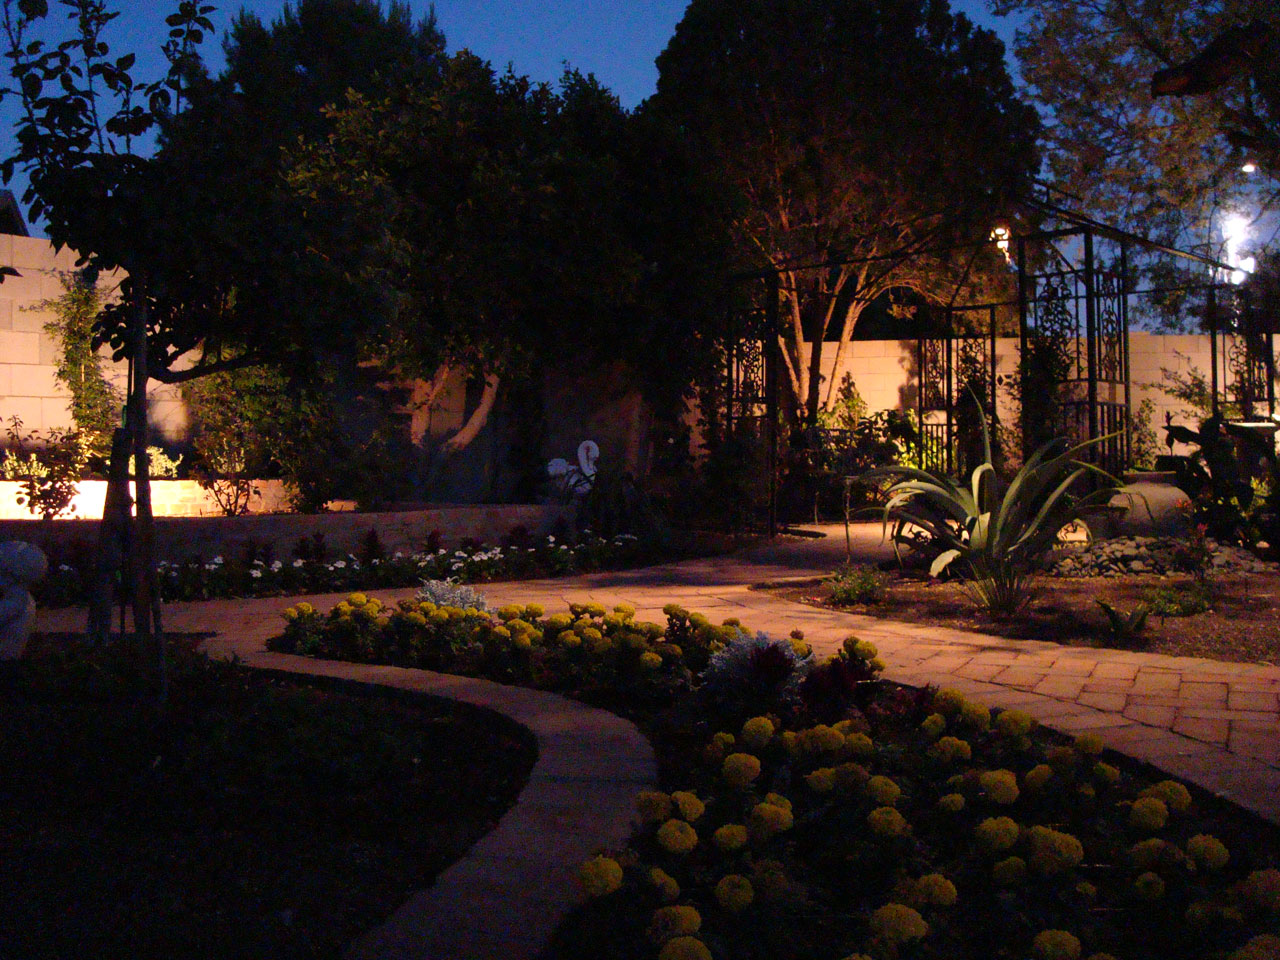 photos 5 landscaping our outdoor lighting systems help to create beautiful outdoor living spaces we also service